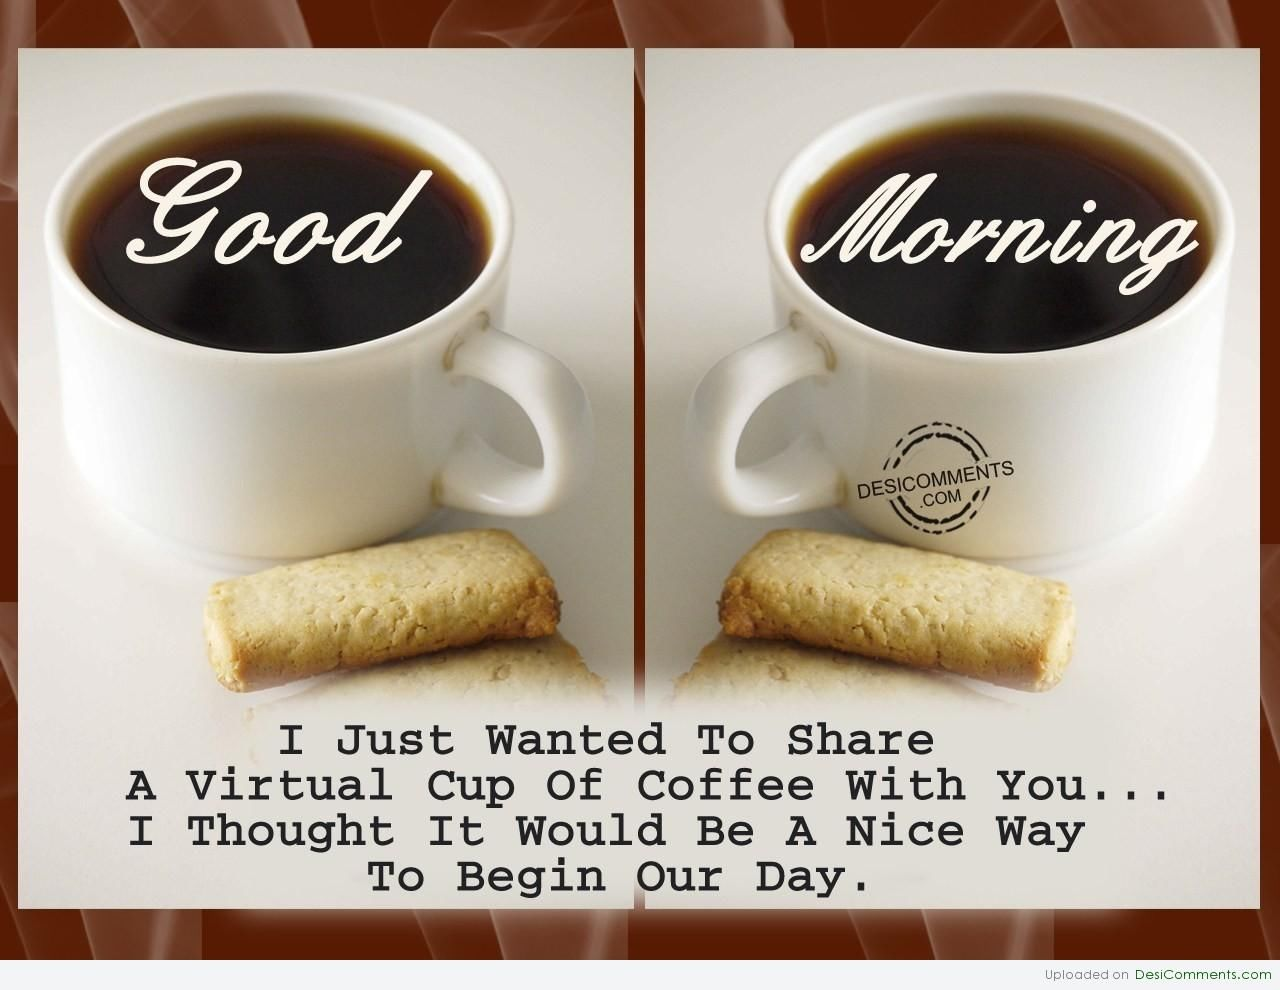 Good Morning Coffee Pictures, Photos, and Images for Facebook ... #goodMorningCoffee